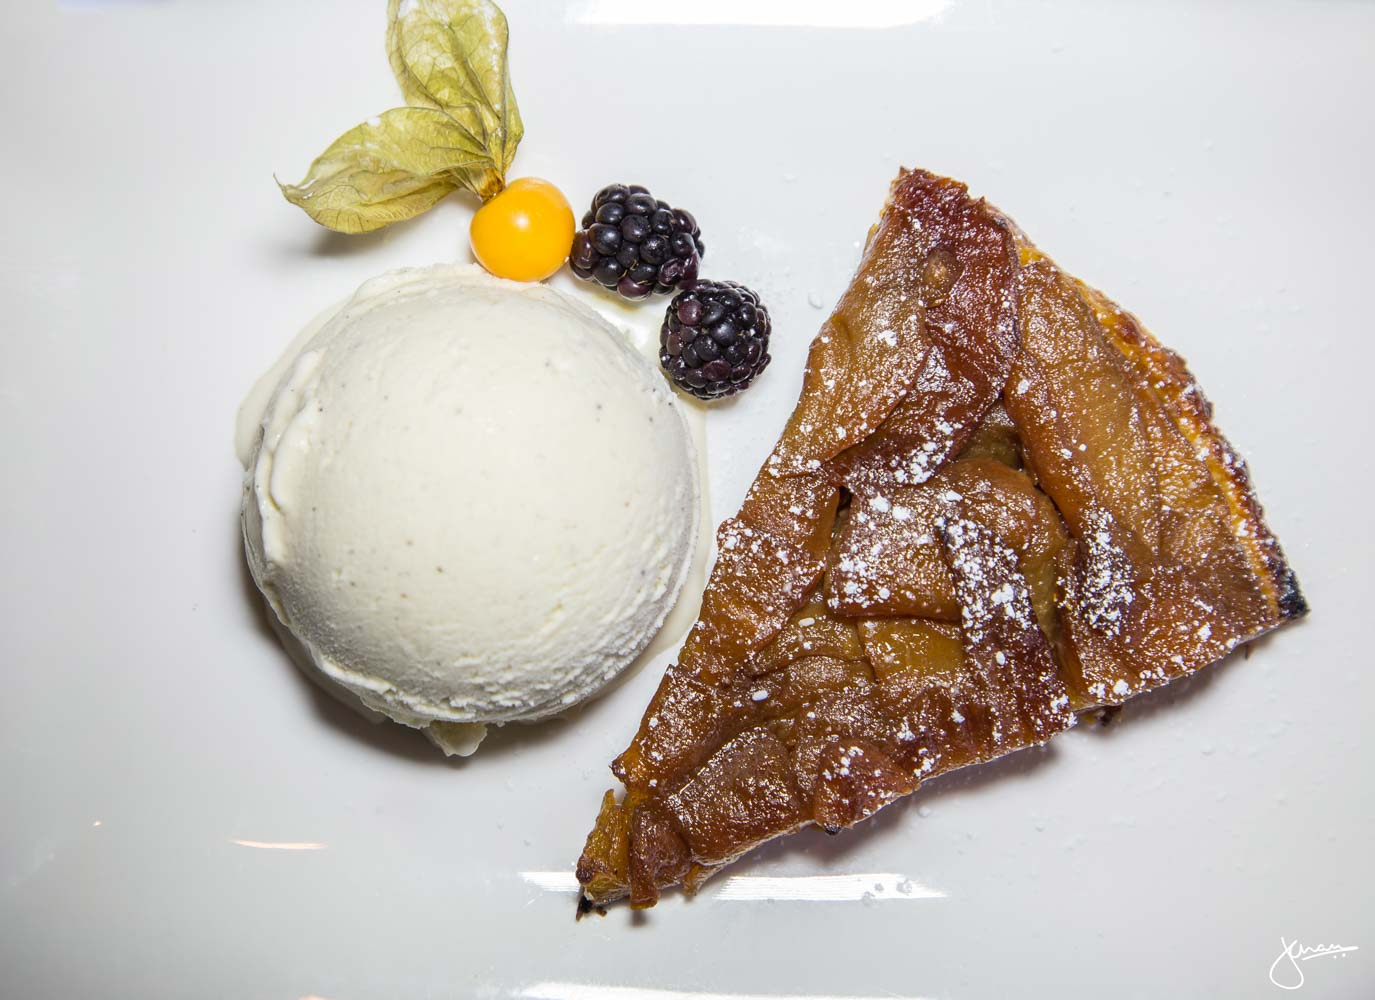 Apple Pie with Vanilla Bean Icecream